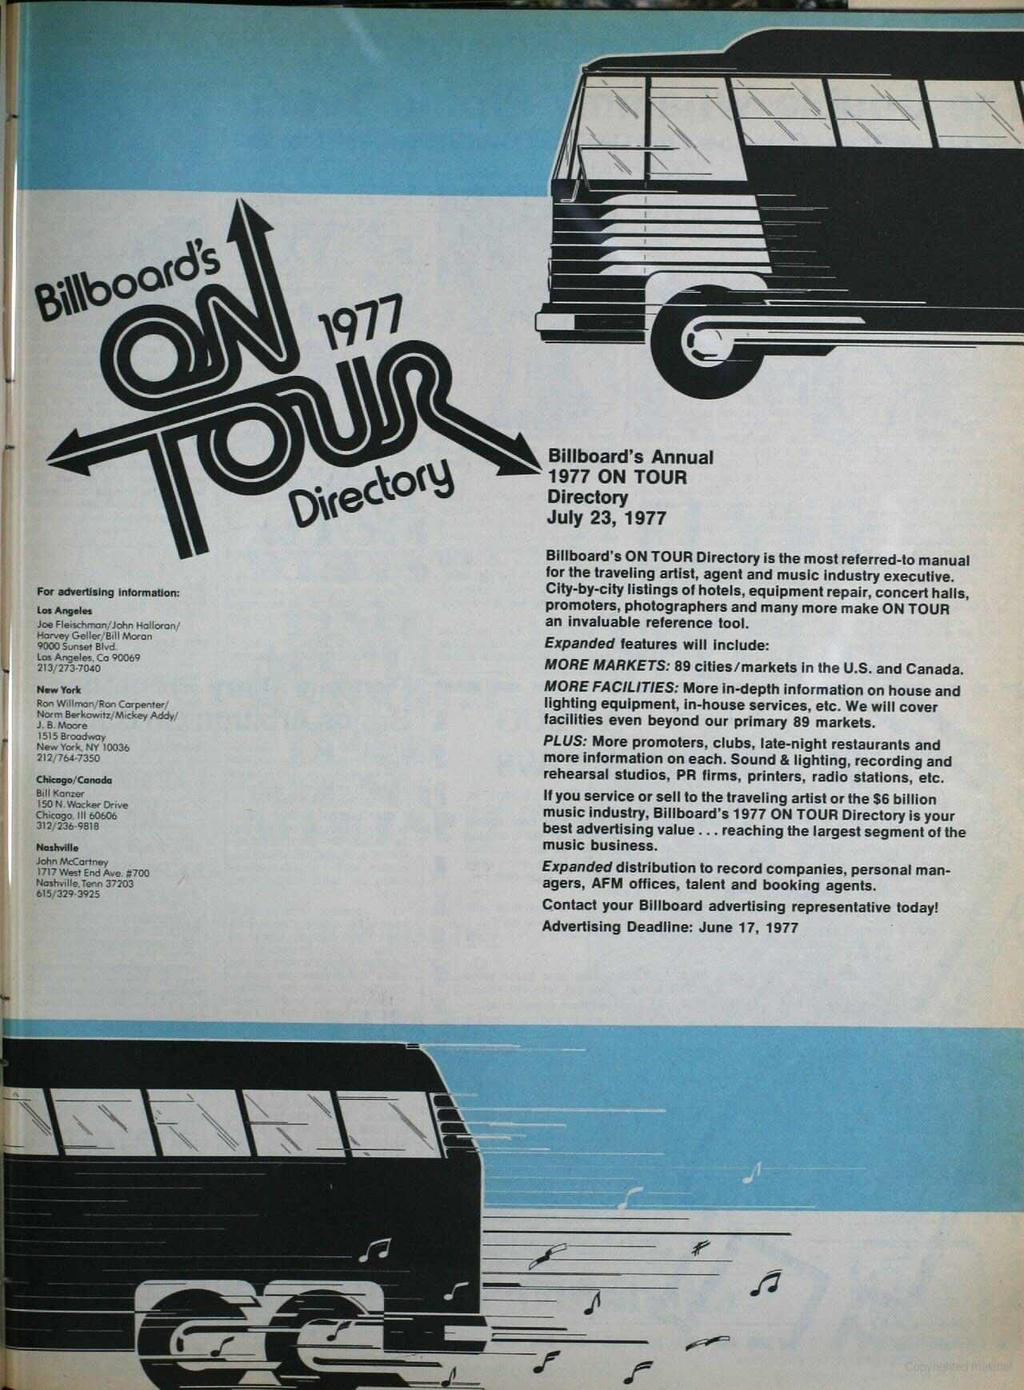 'ilveckot Billboard's Annual 977 ON TOUR Directory July 23, 977 l r For advertising information: Loo Angers Joe Fleischman /John Halloran/ Harvey Gel ler;'bill Moran 9000 Sunset Blvd.